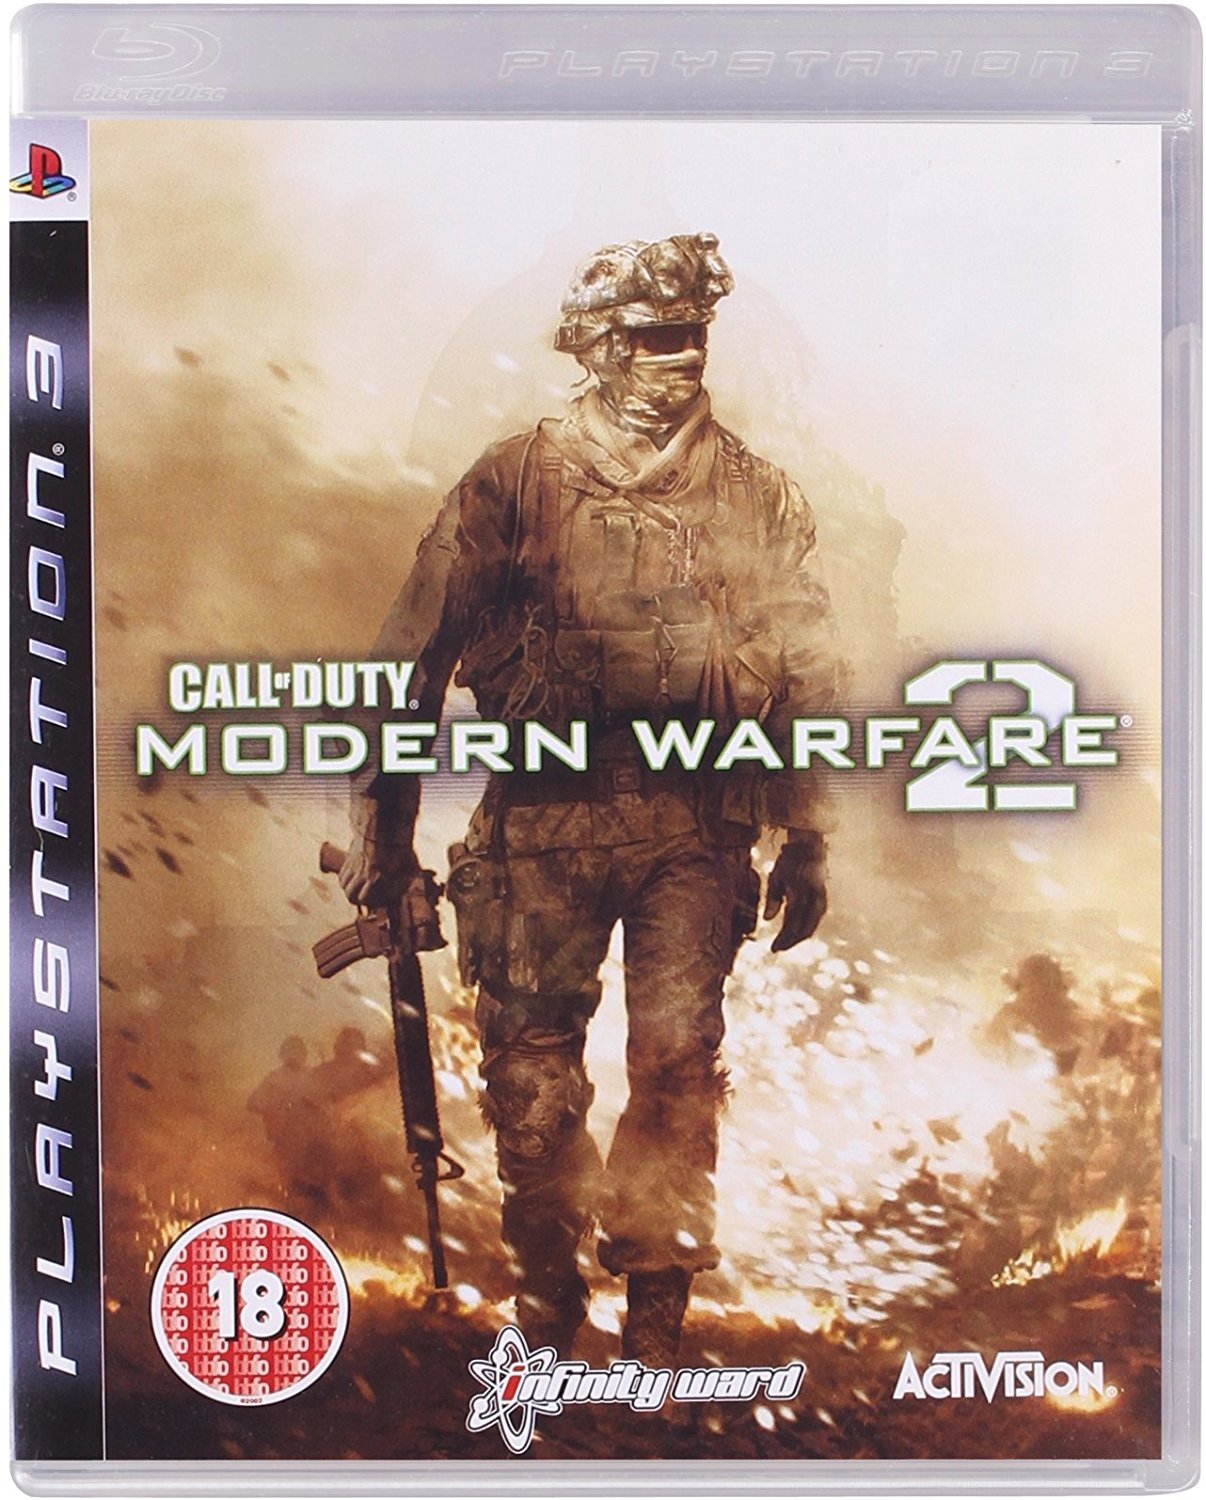 Playstation 3 Ps3 Call Of Duty Modern Warfare 2 For Sale